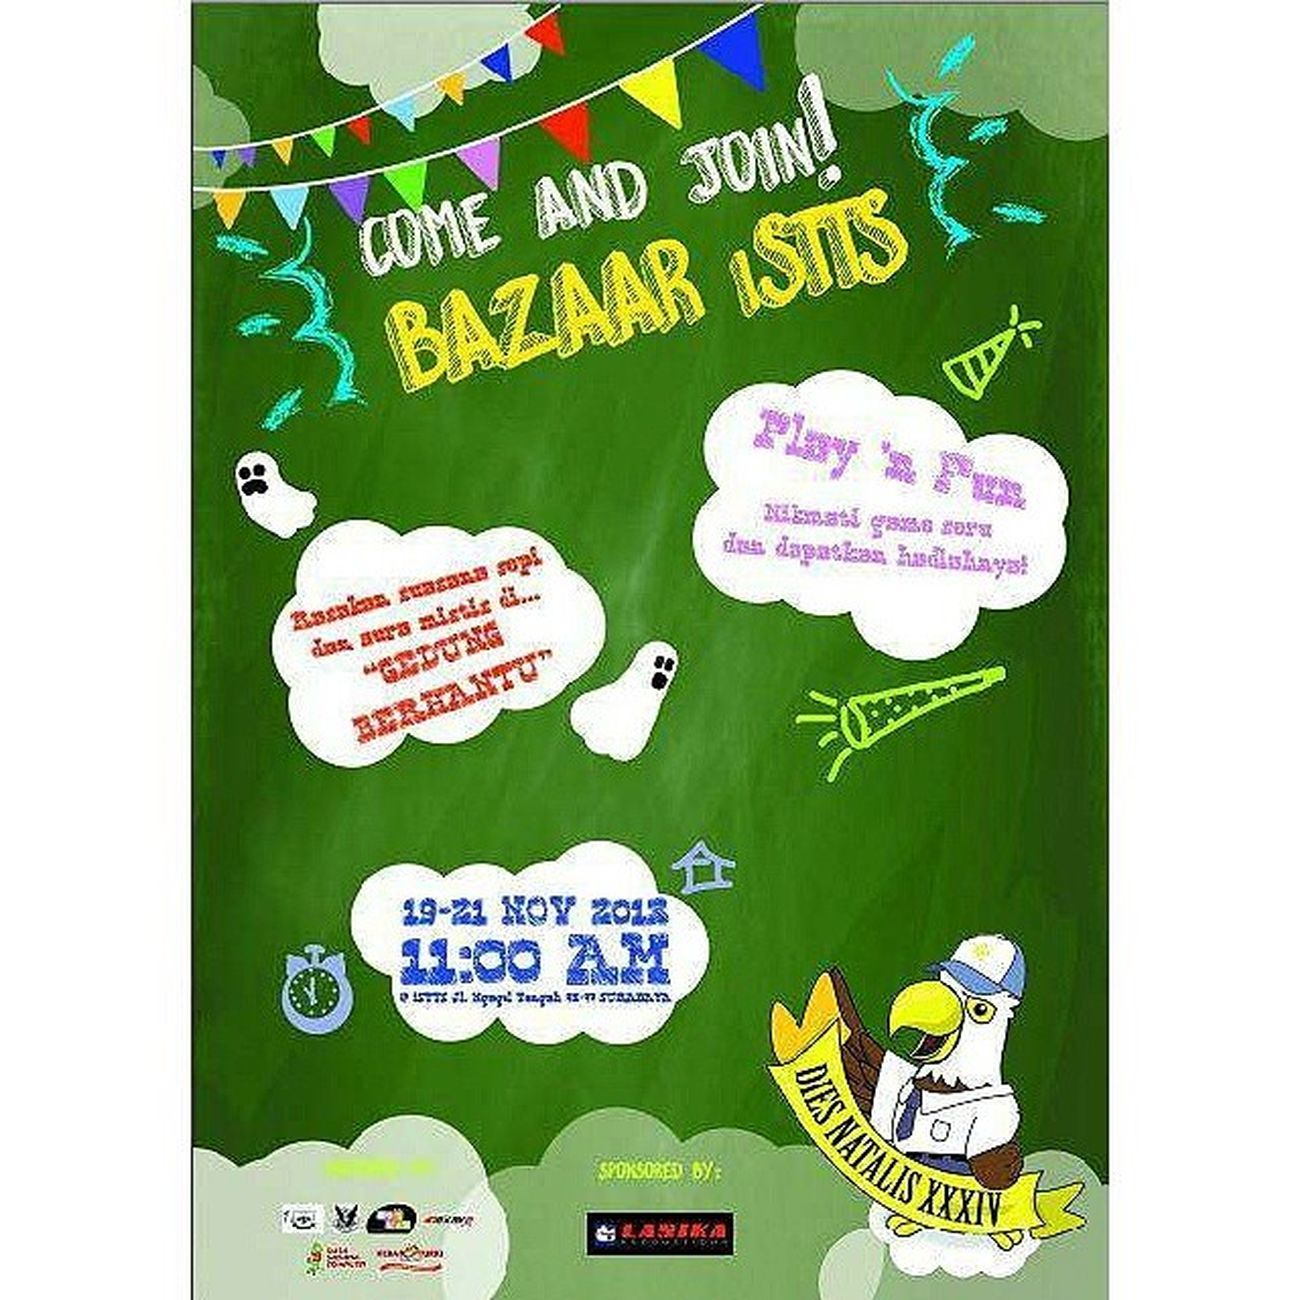 Come and join! BAZAAR iSTTS Bazaar Kampus  Diesnatalis Backtoschool